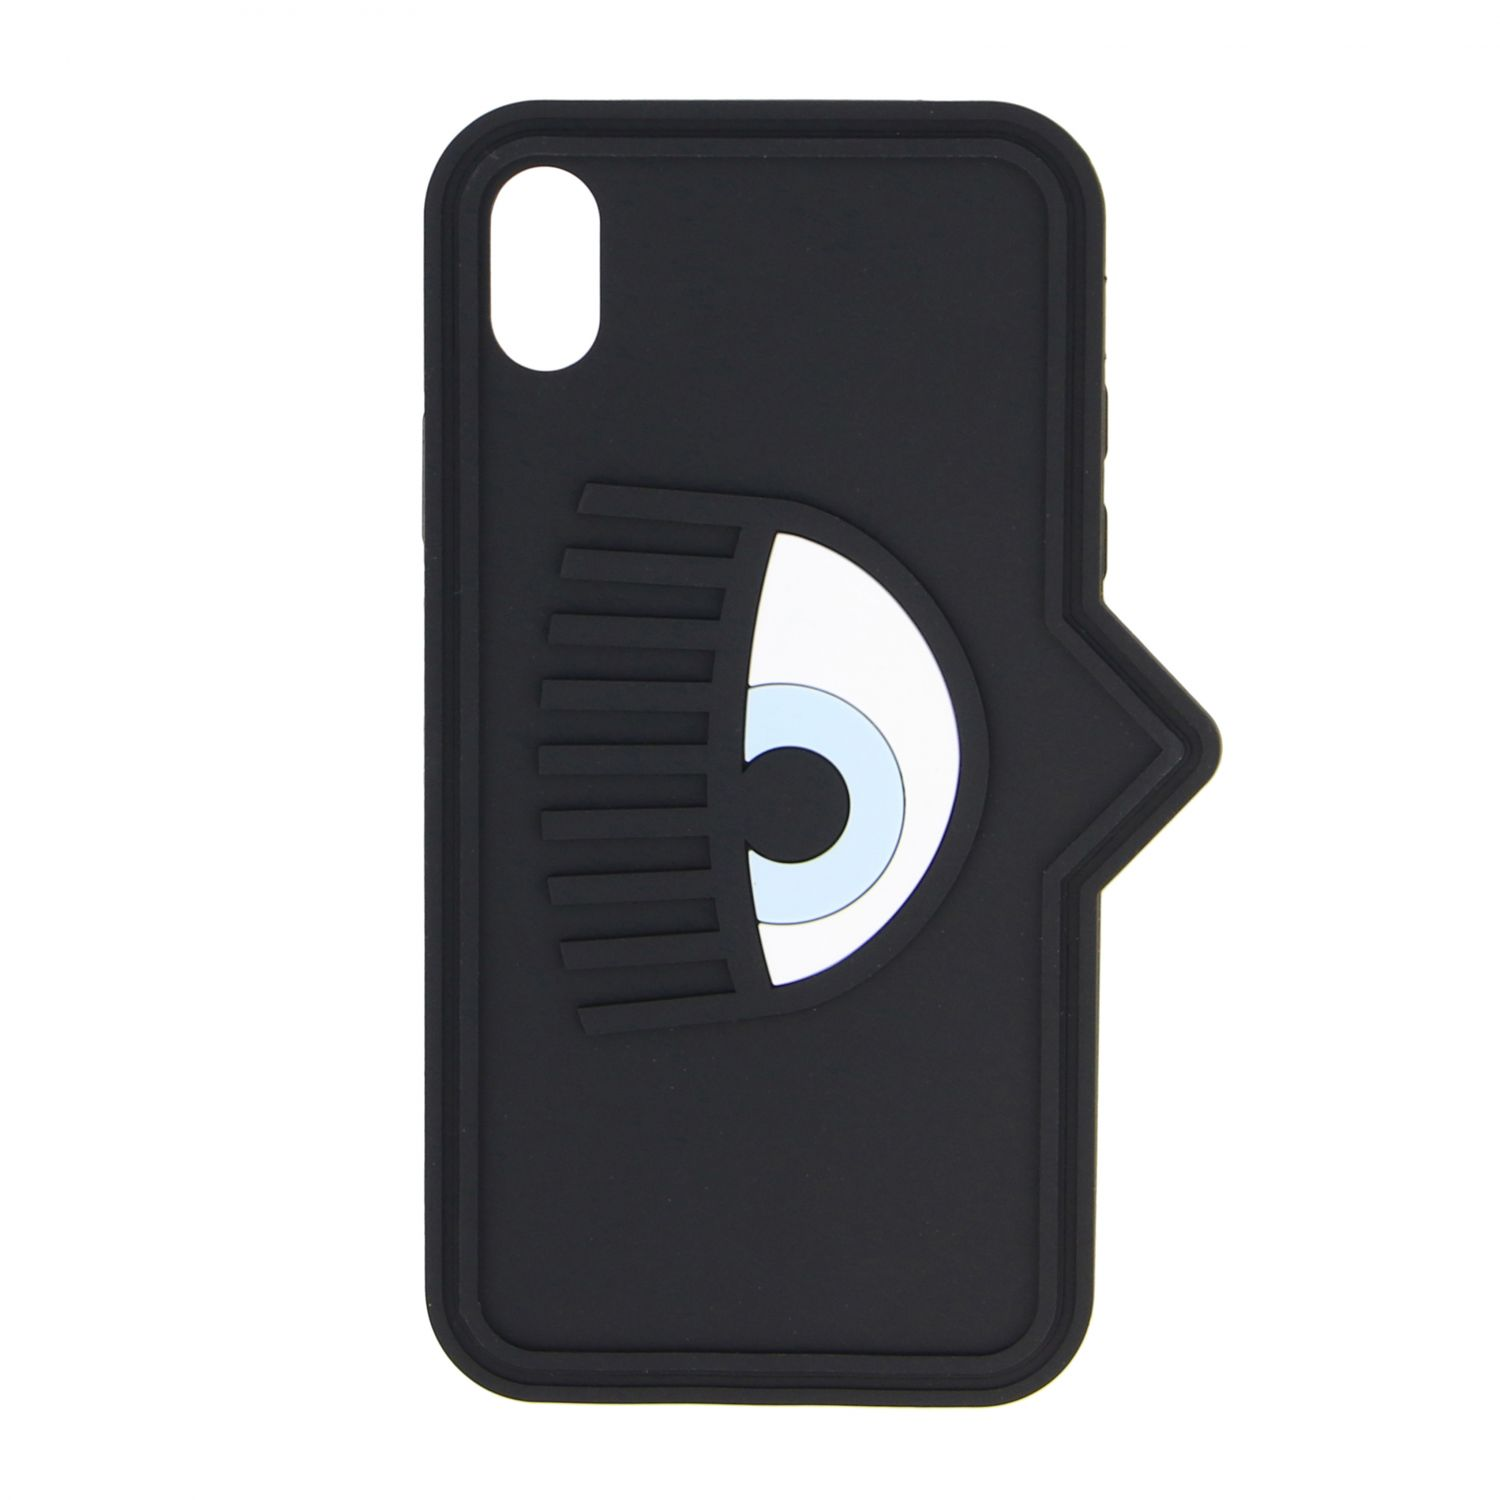 Chiara Ferragni case for Iphone xs in silicone with eye black 1